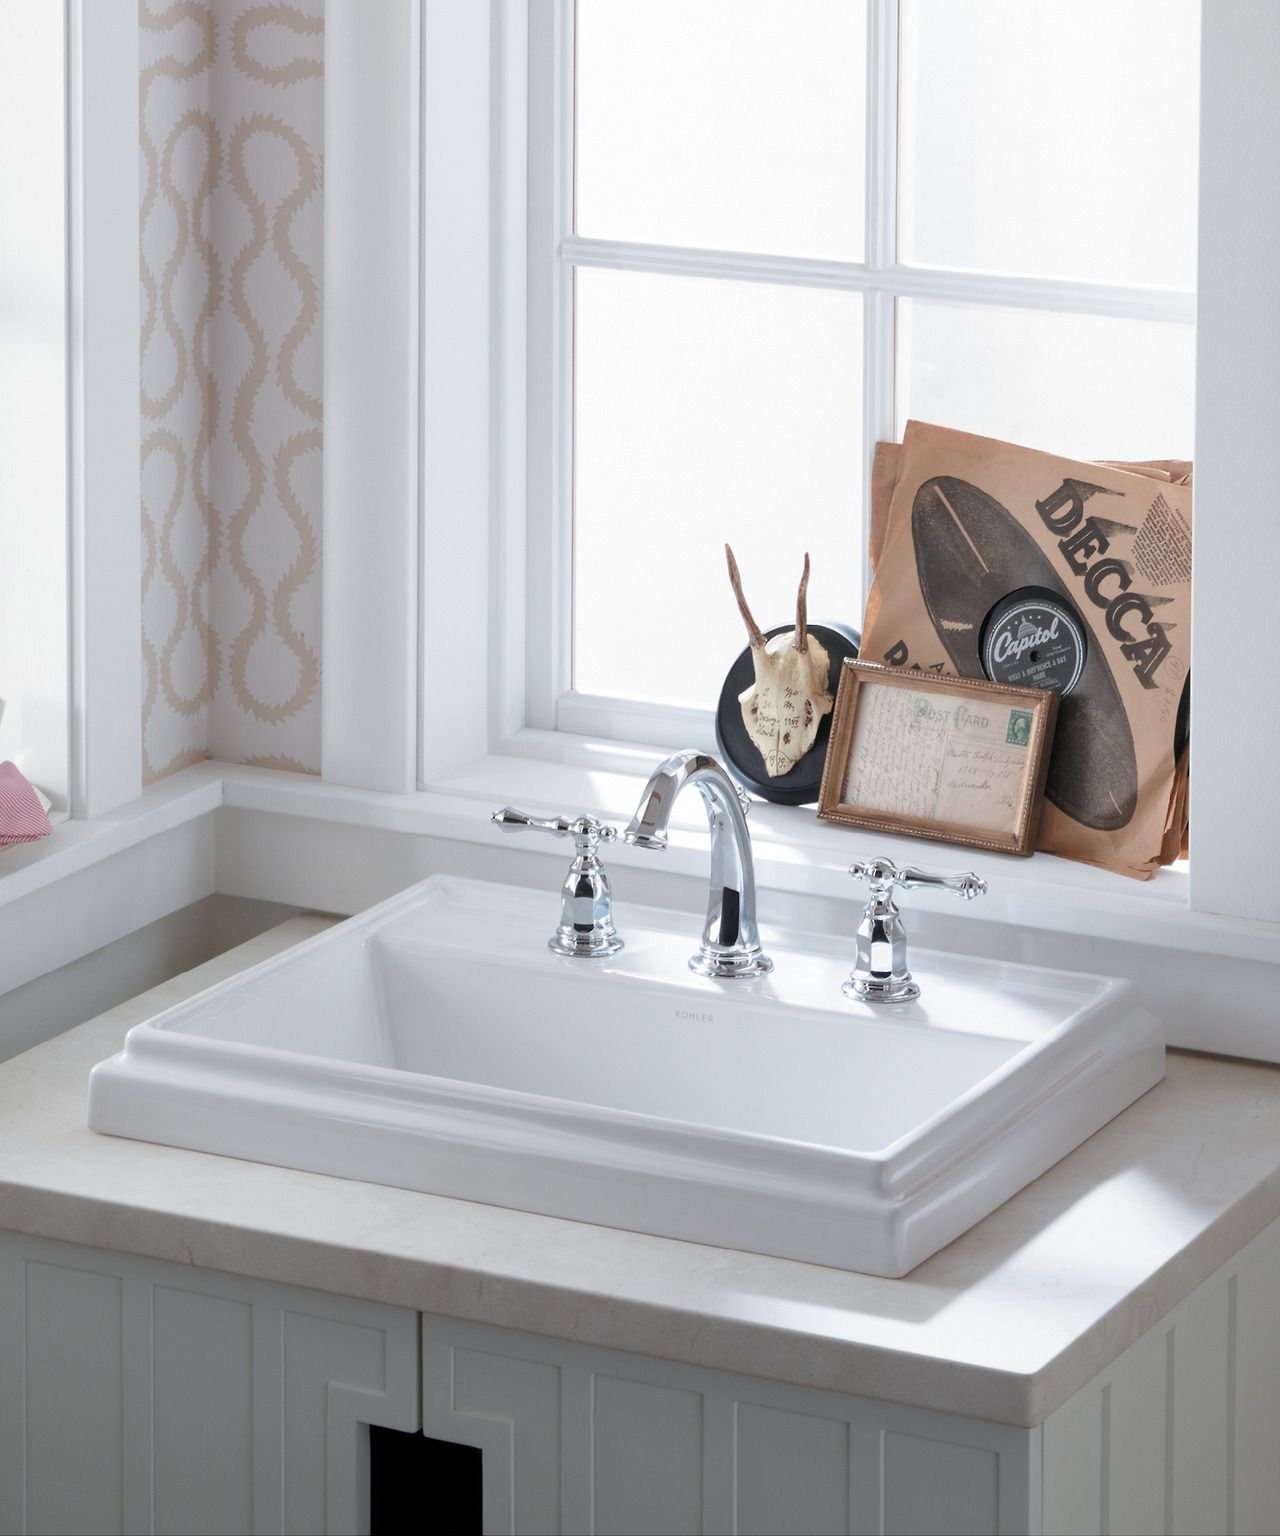 American classics bathroom vanities - Recalling The Elegant Simplicity Of Shaker Style Furniture Tresham Blends Classic American Design With Bathroom Fixturesbathroom Vanitiesbathroom